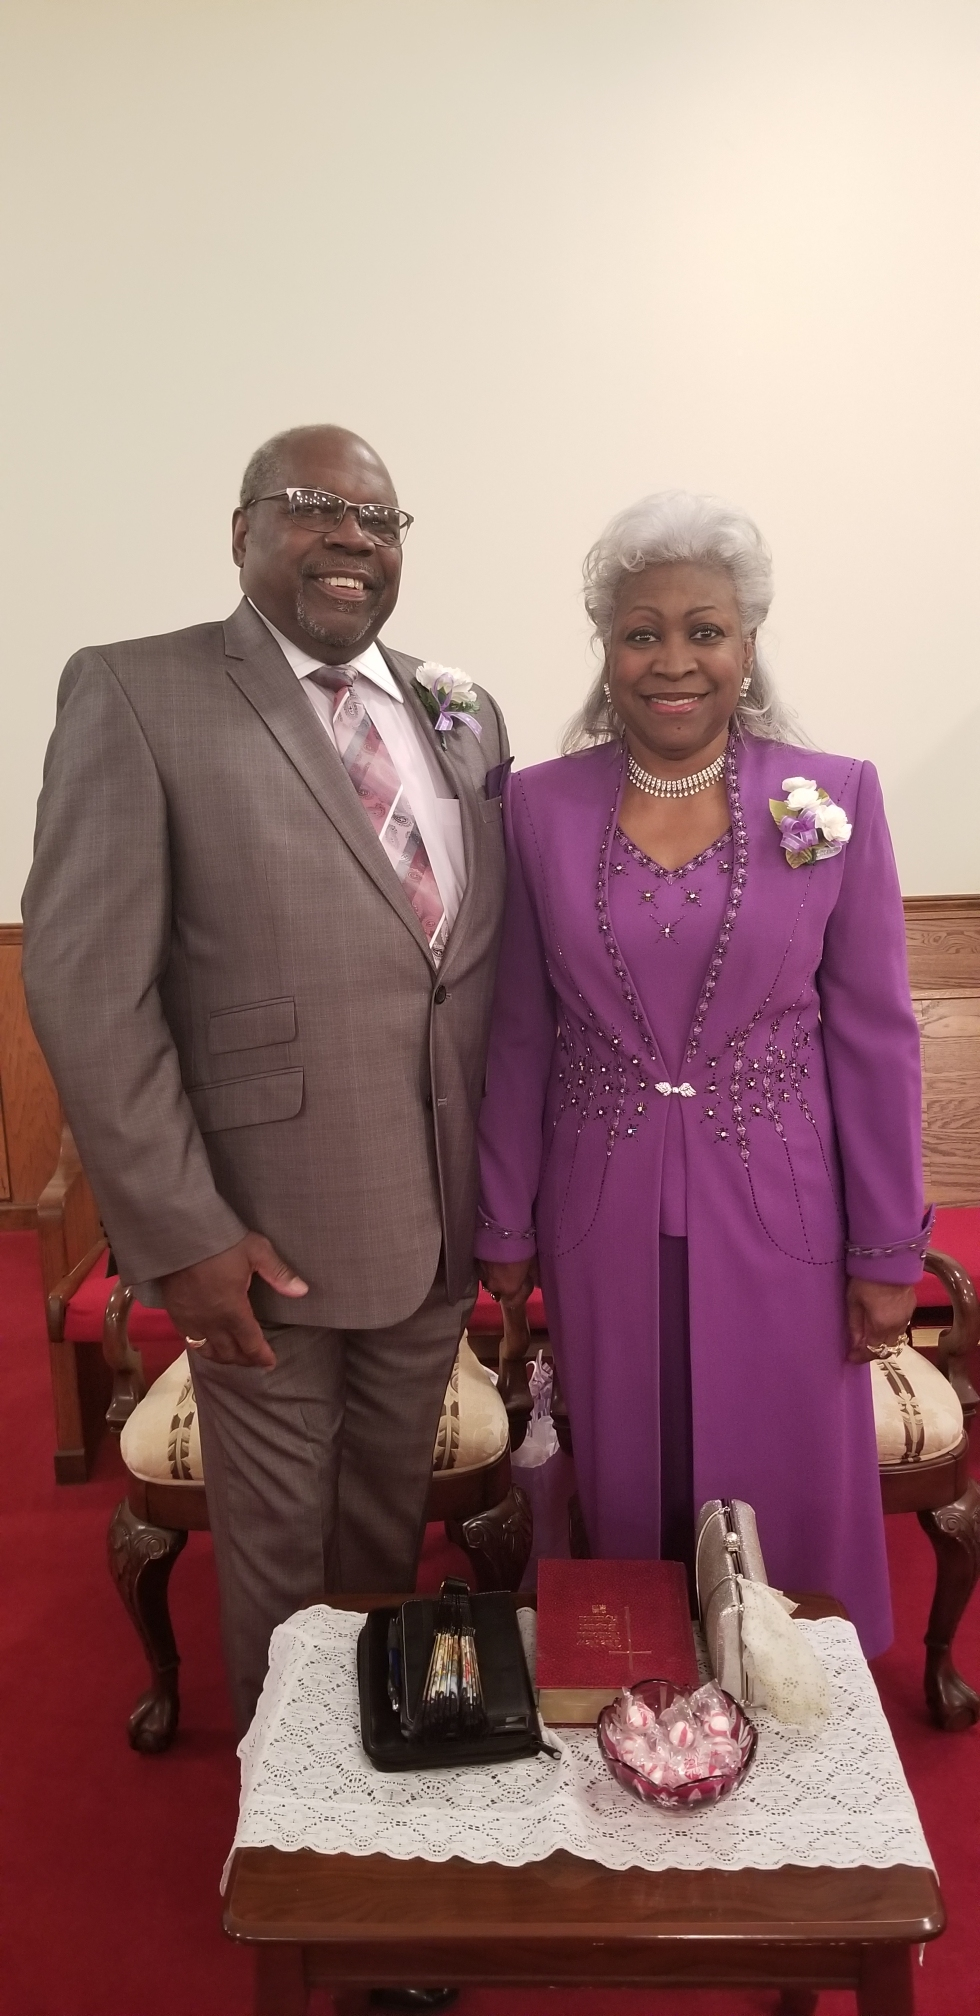 Pastor Jimmy Waddell and First Lady Paulette Waddell